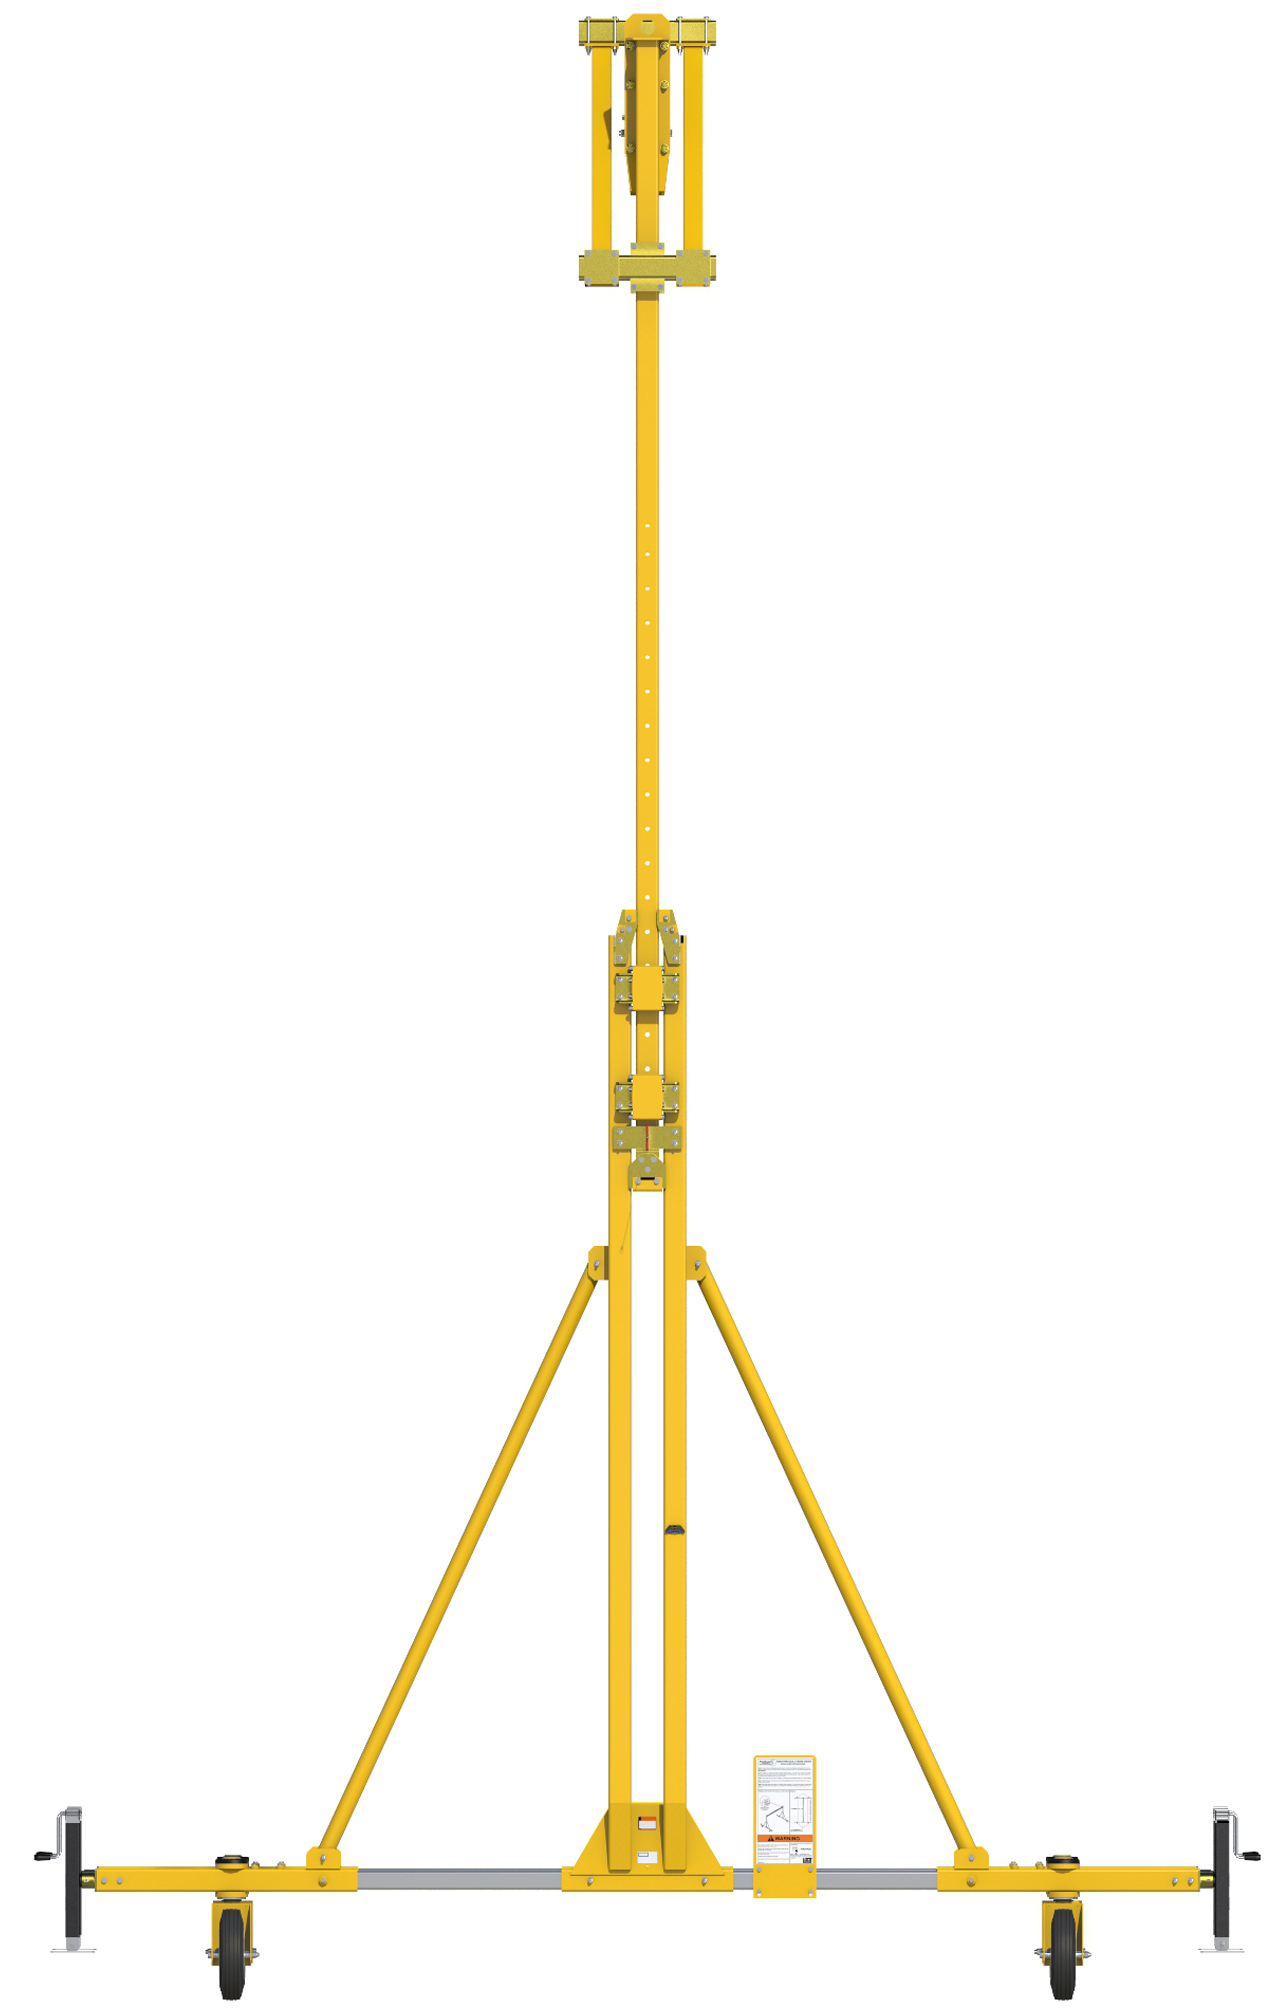 FlexiGuard Portable A-Frame Fall Arrest System Adjustable Height, Side View